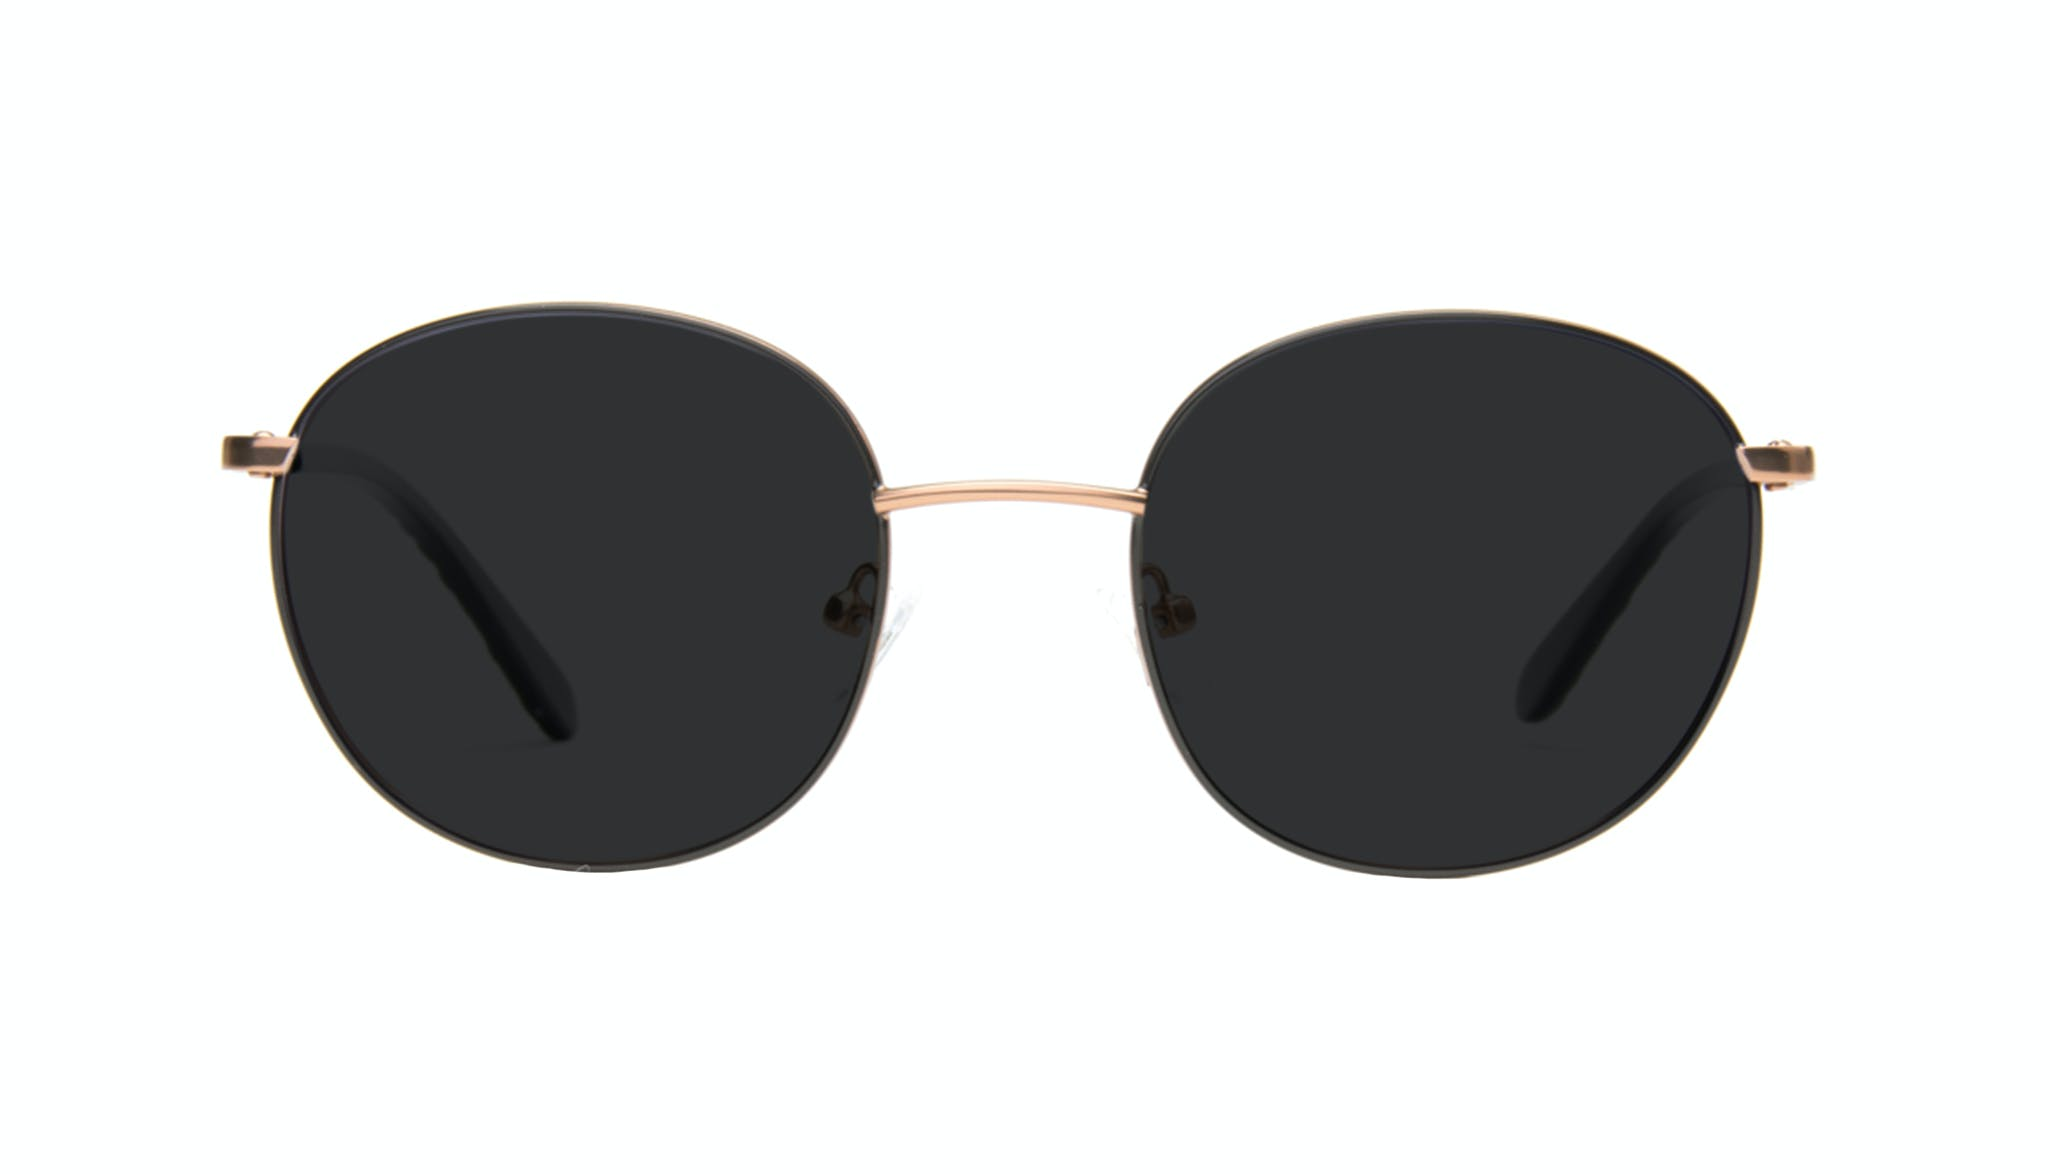 Affordable Fashion Glasses Round Sunglasses Women Joy Black Copper Front